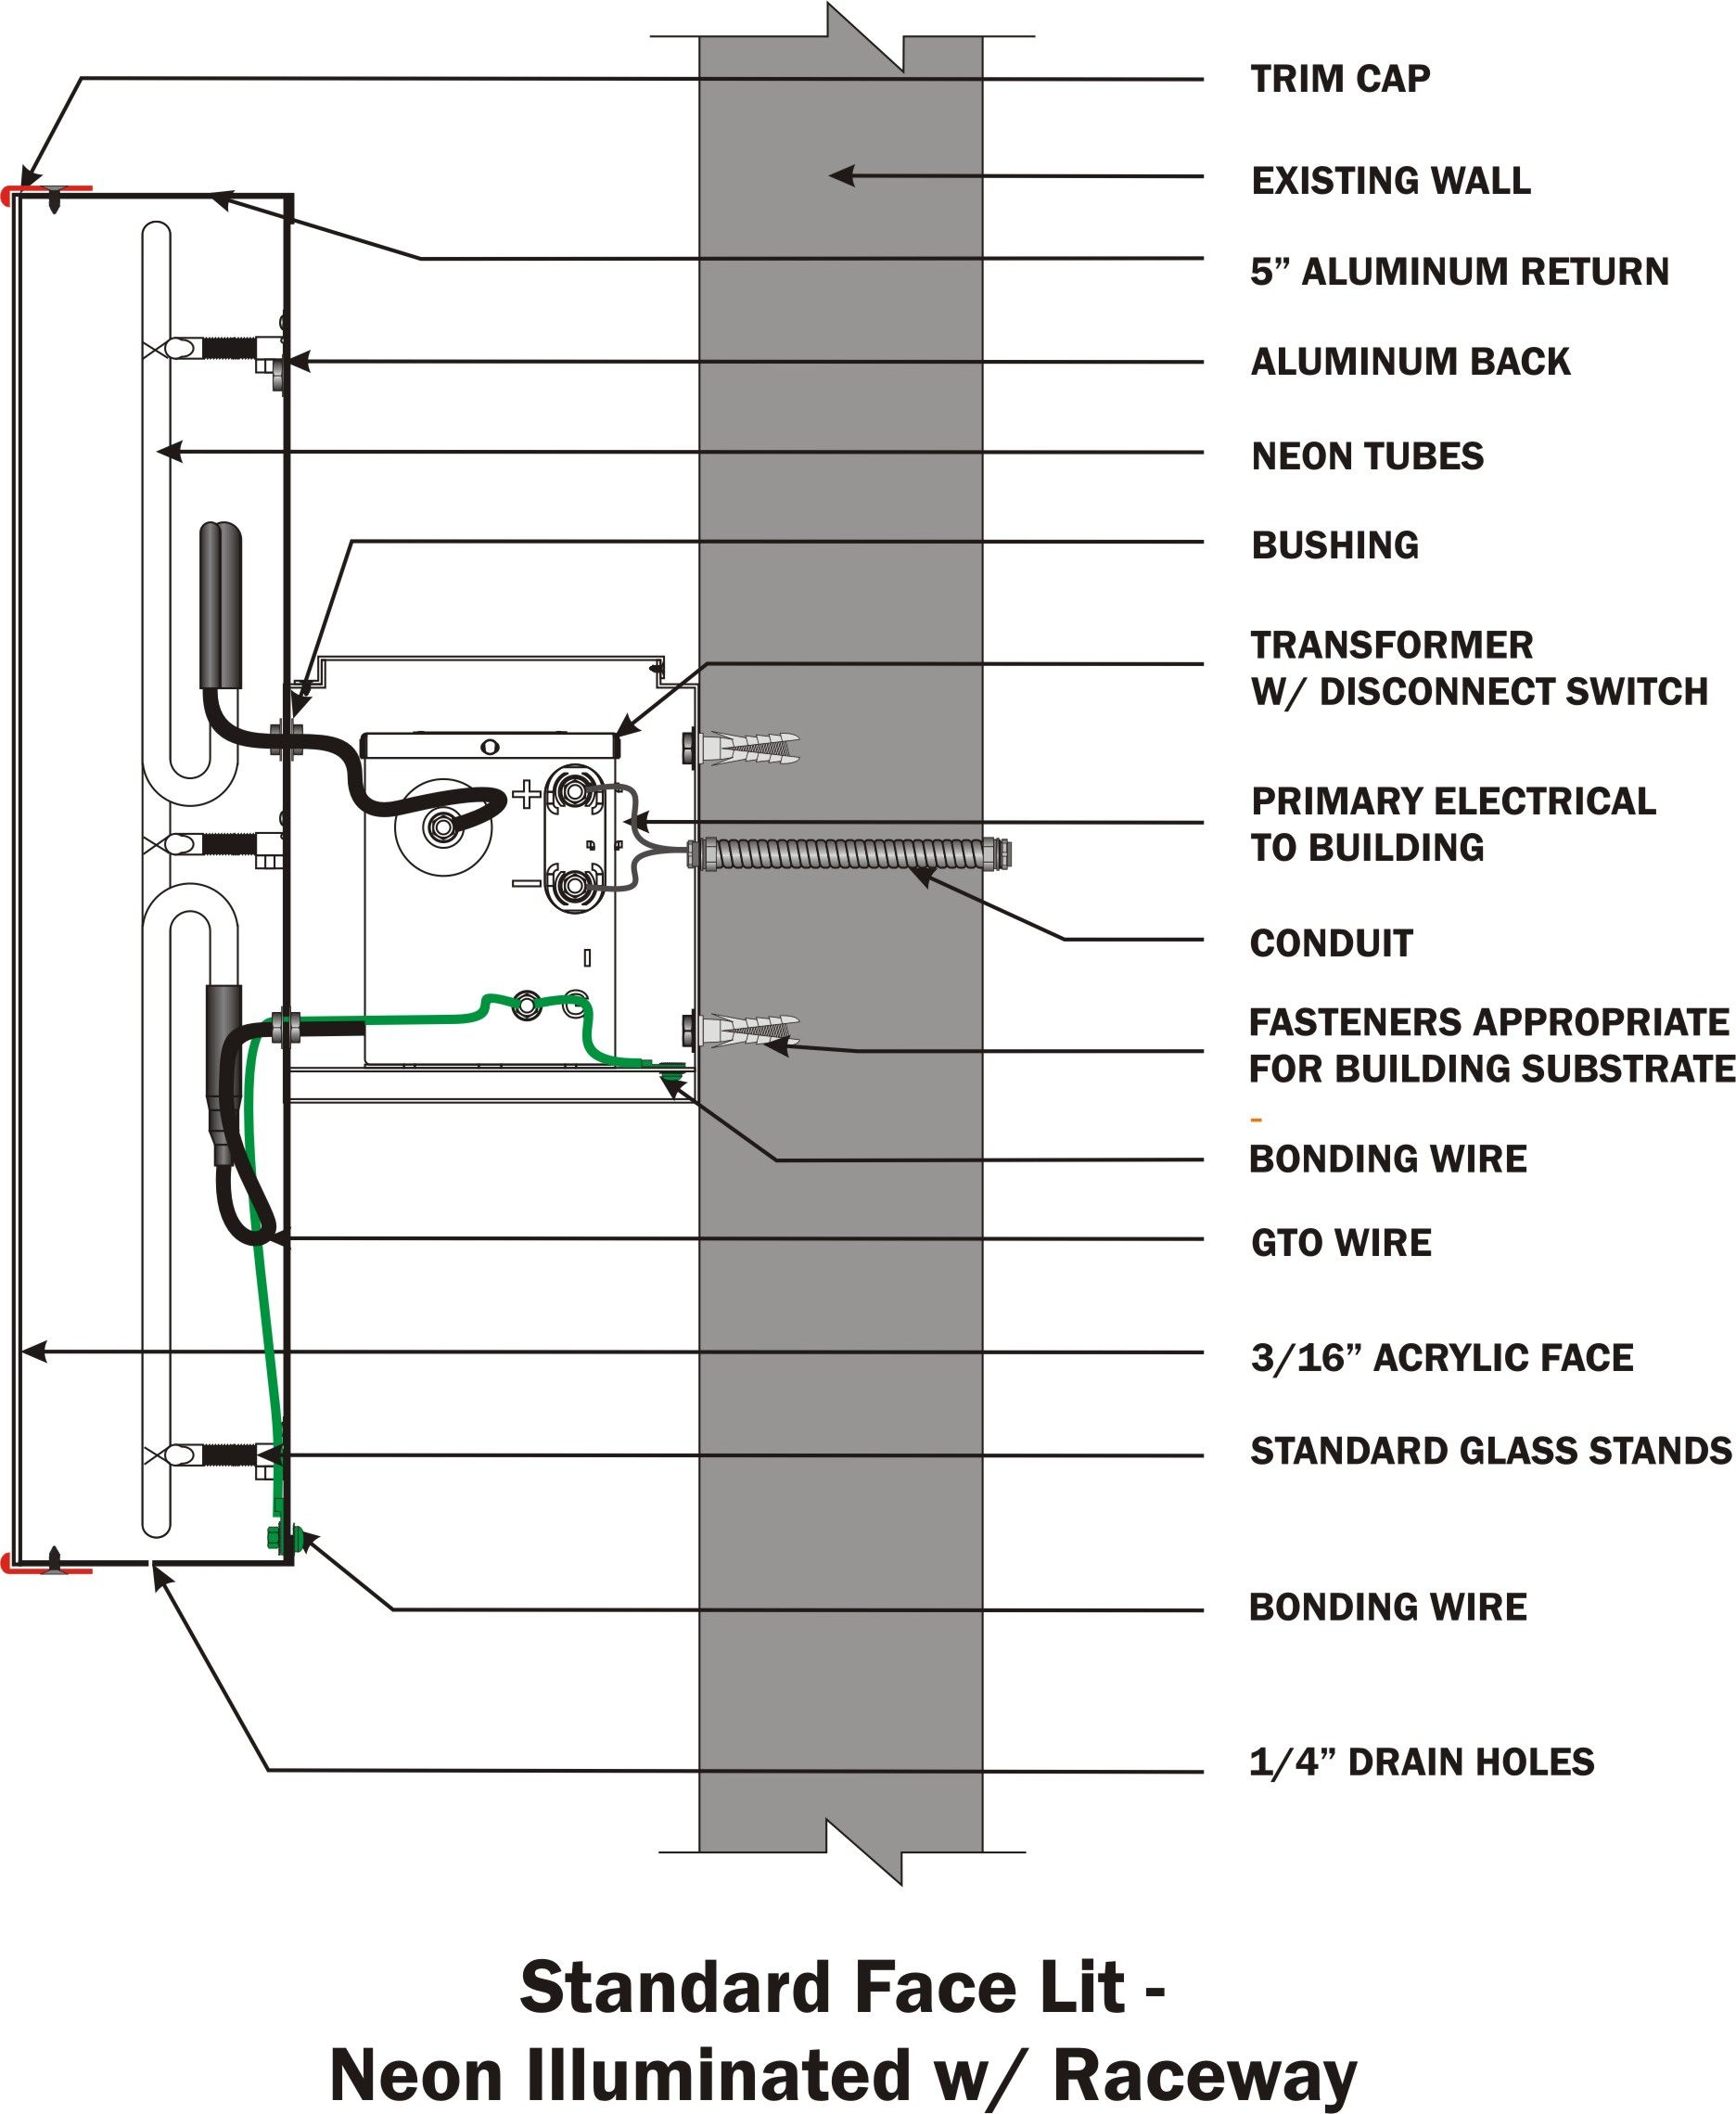 hight resolution of letter sign wiring diagrams home wiring diagram wiring diagram letters t p building signs diagram wiring diagram